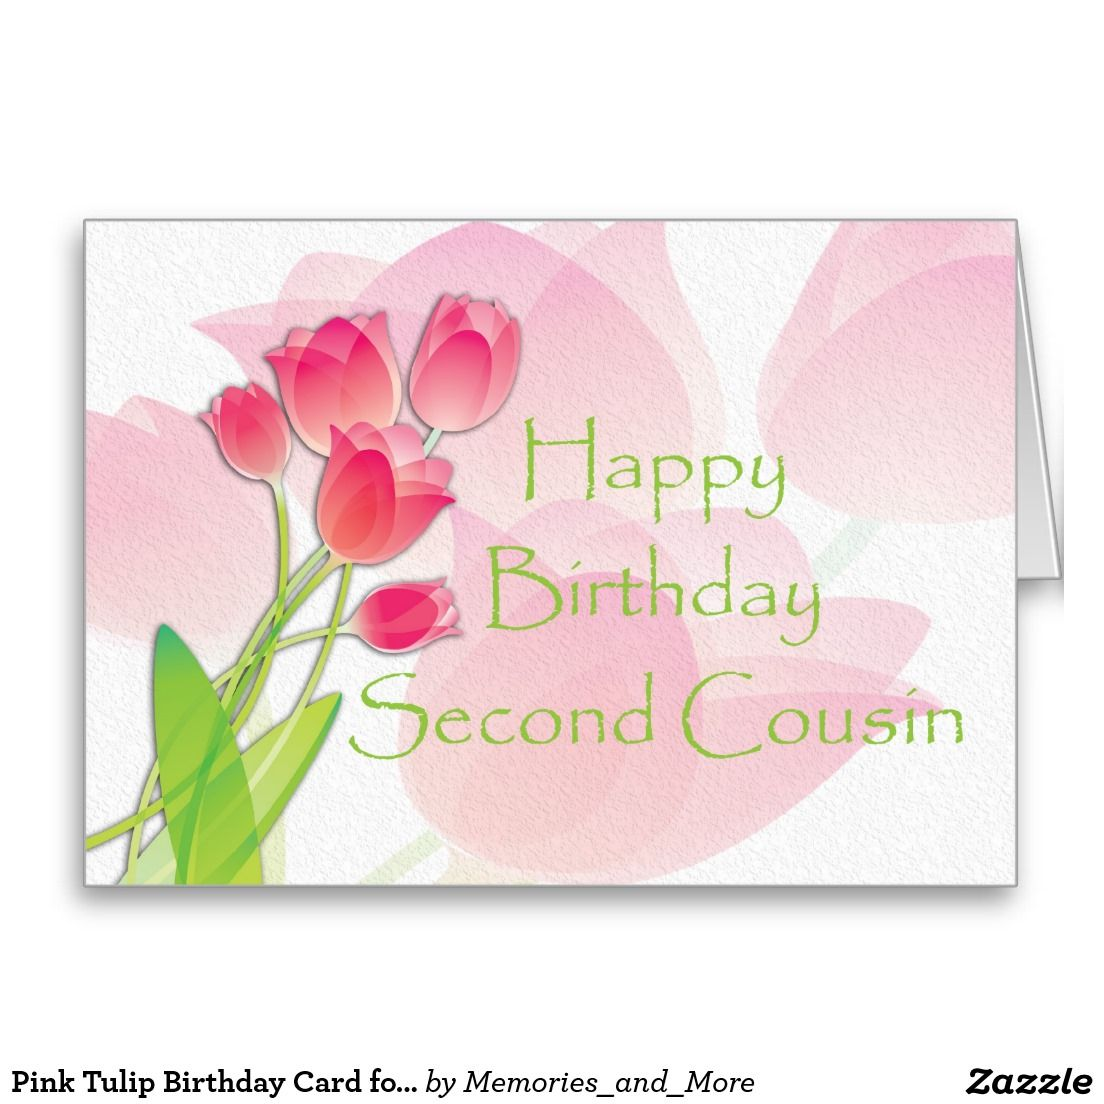 Pink tulip birthday card for second cousin zazzle sales pink tulip birthday card for second cousin kristyandbryce Images